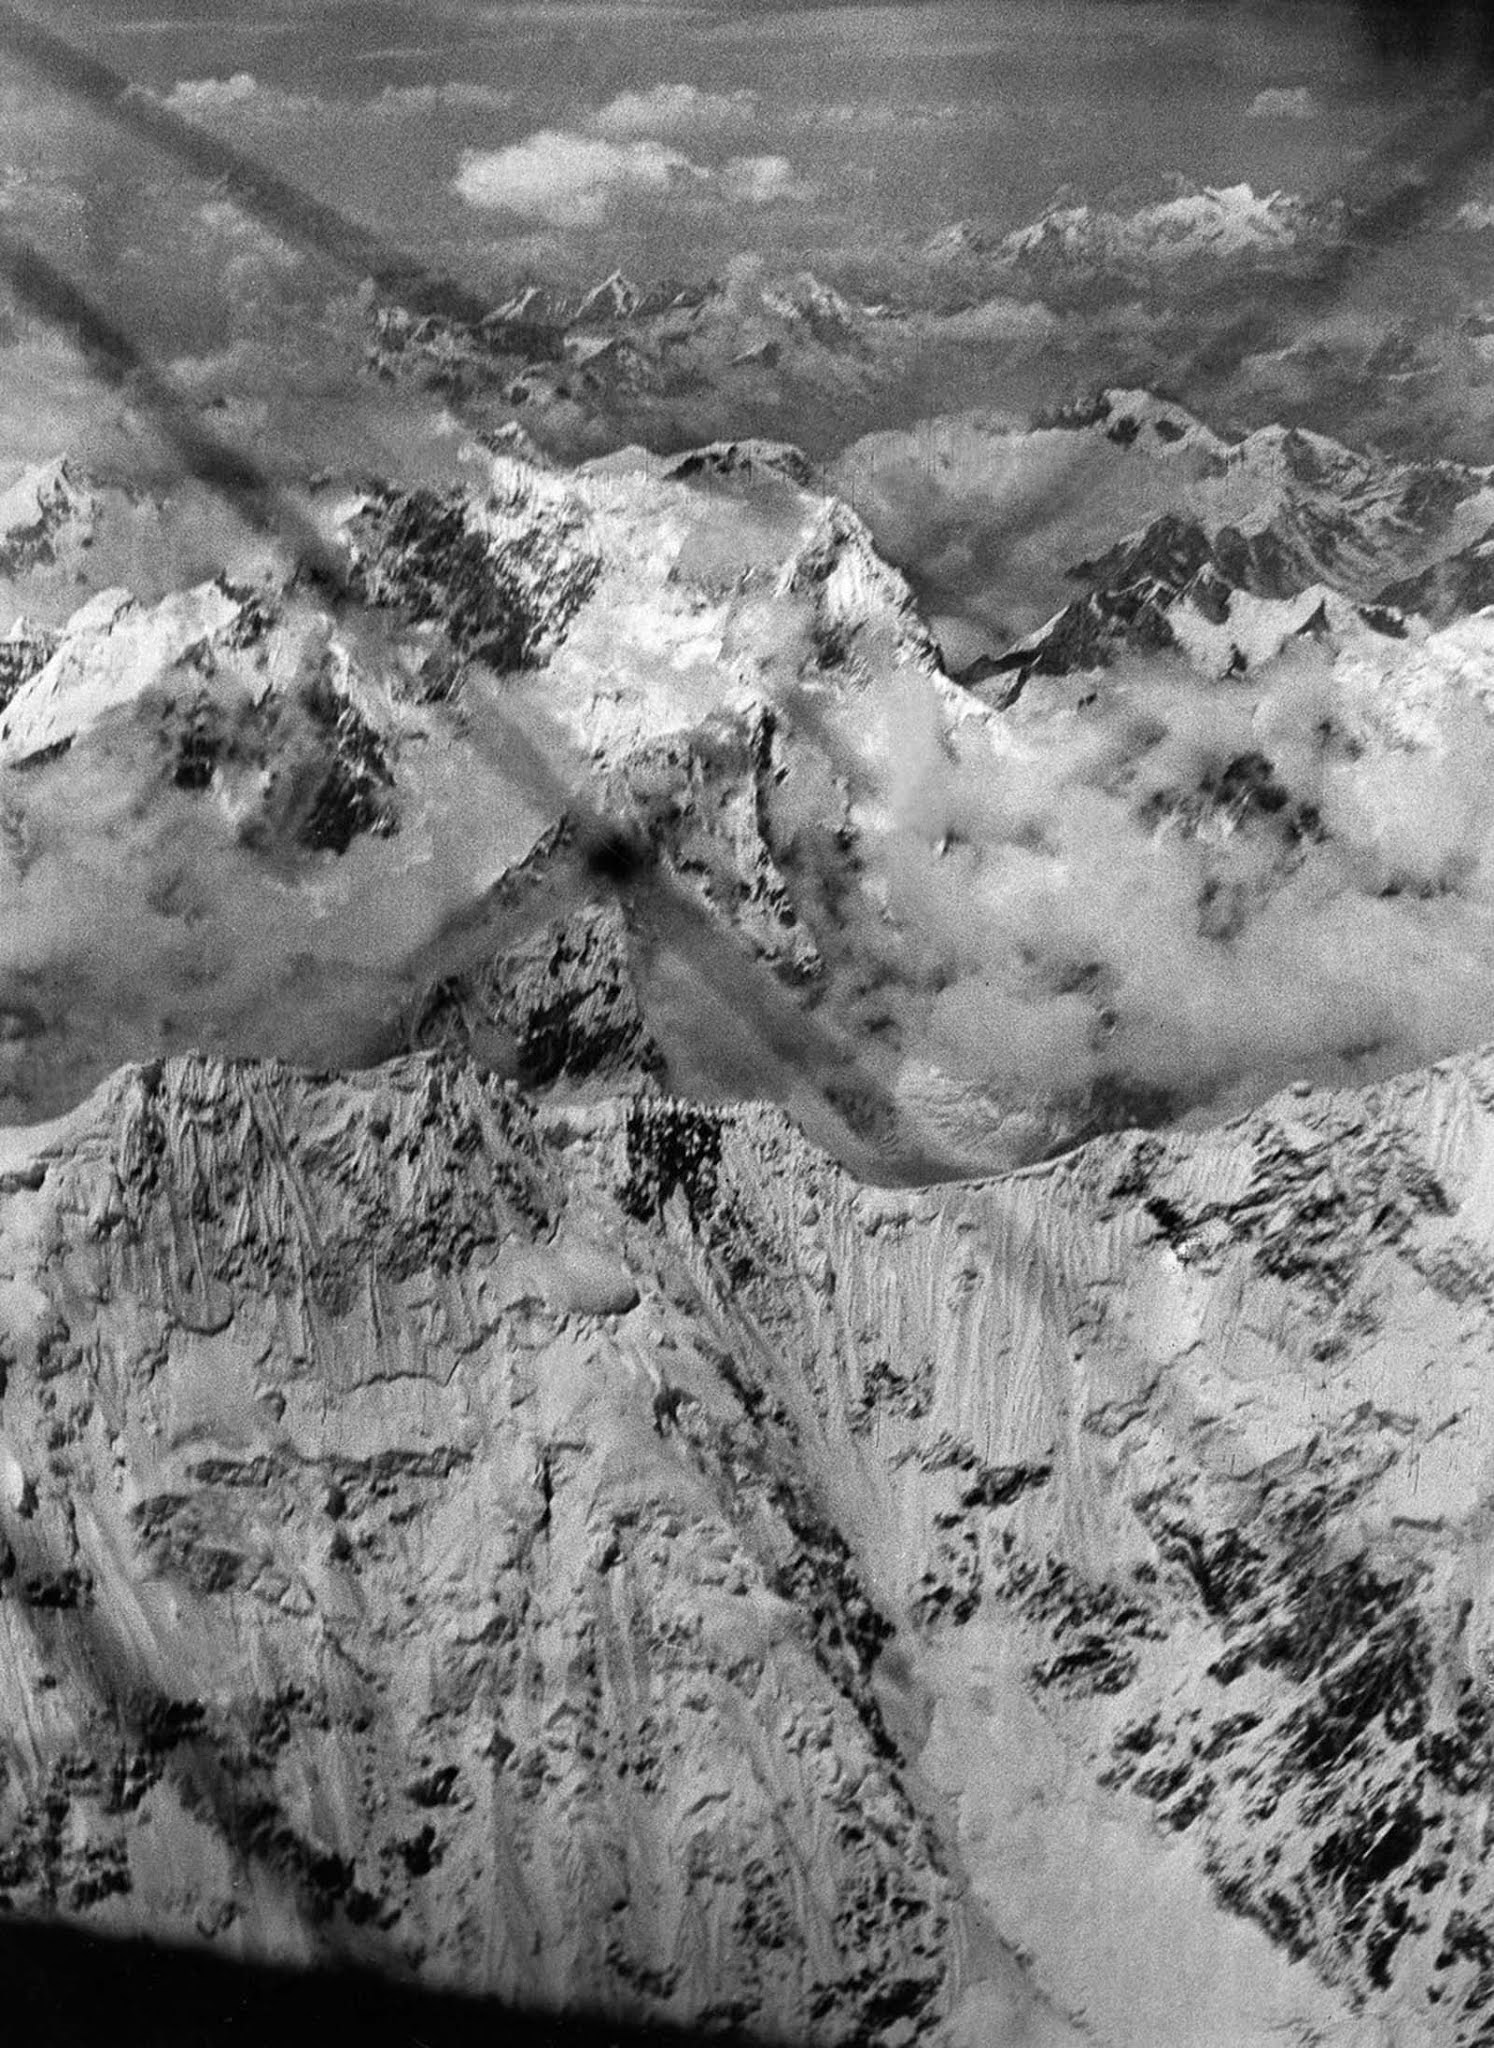 The expedition flies over Kanachenjunga, the third highest mountain in the world.